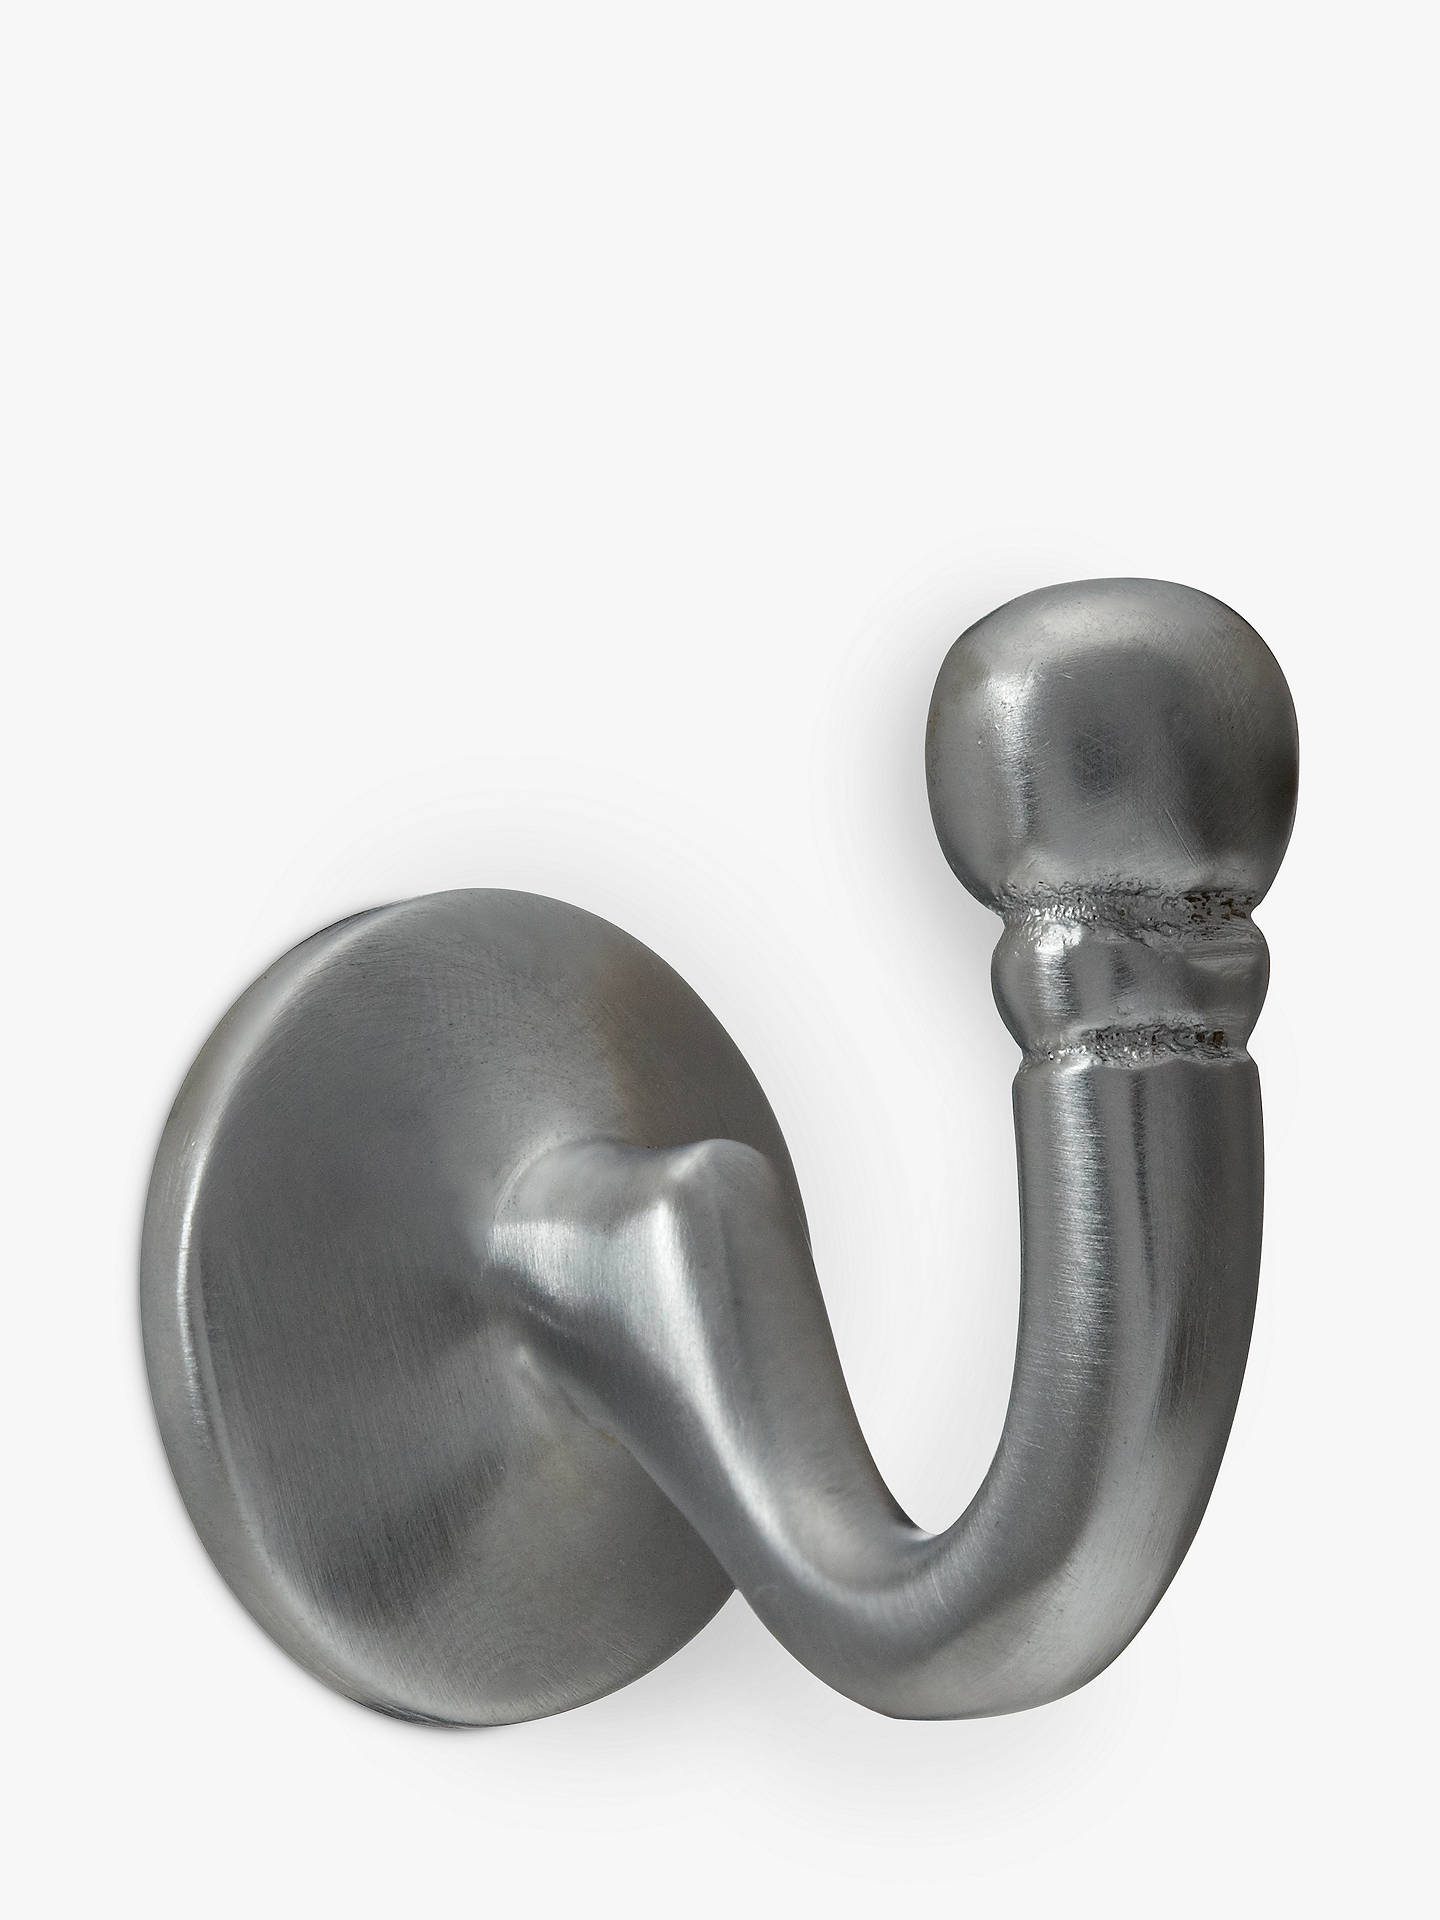 BuyJohn Lewis & Partners Regency Tieback Hooks, Pair, Satin Chrome Online at johnlewis.com